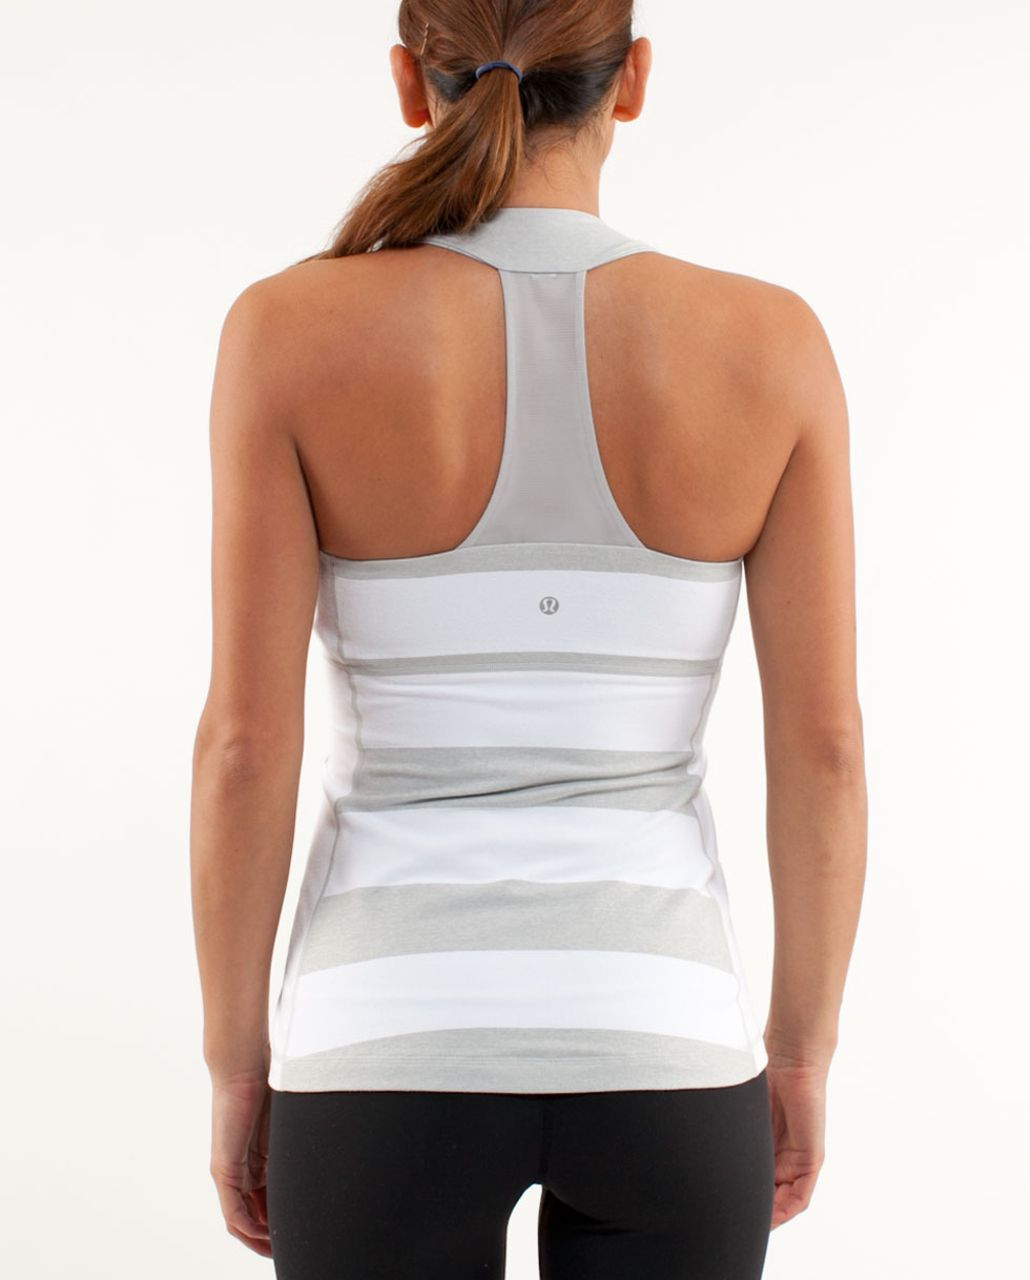 Lululemon Scoop Neck Tank - White Silver Spoon Wide Bold Multi Stripe /  Heathered Blurred Grey